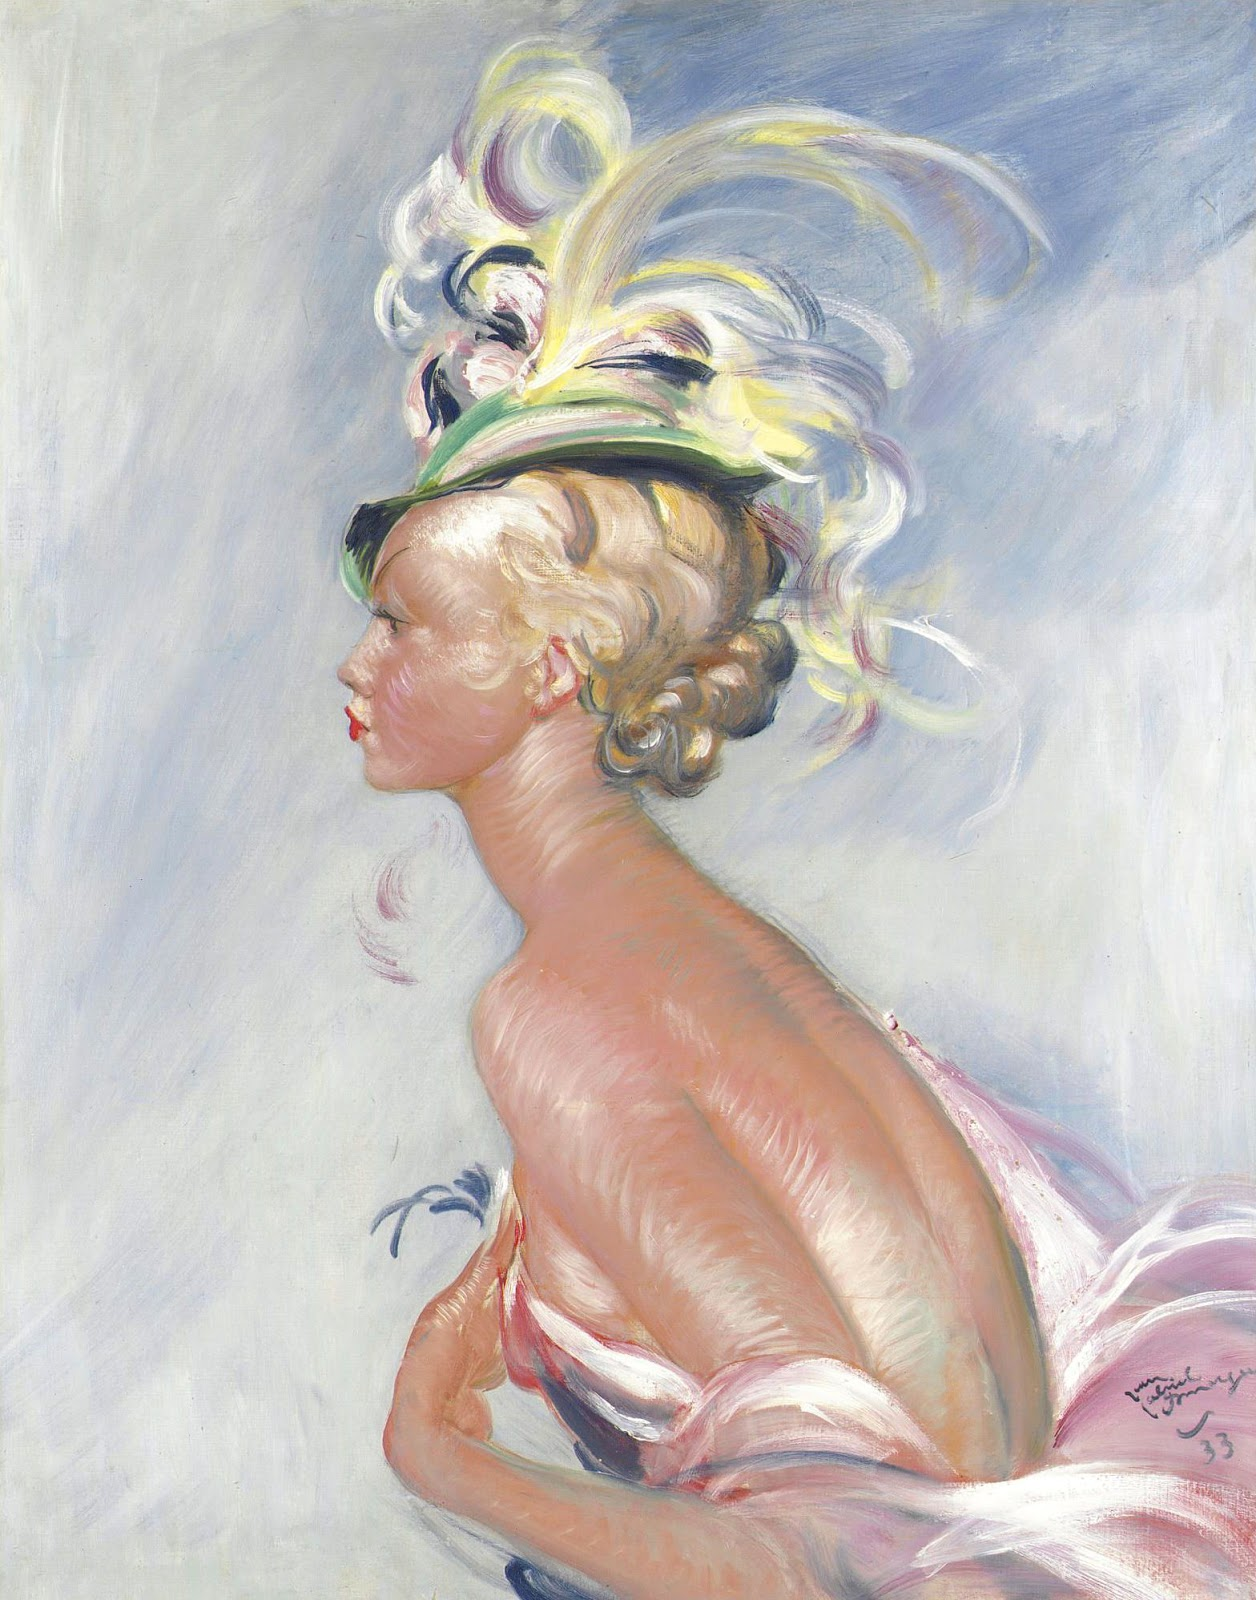 Jean Gabriel Domergue Fashionable woman in hat with feathers